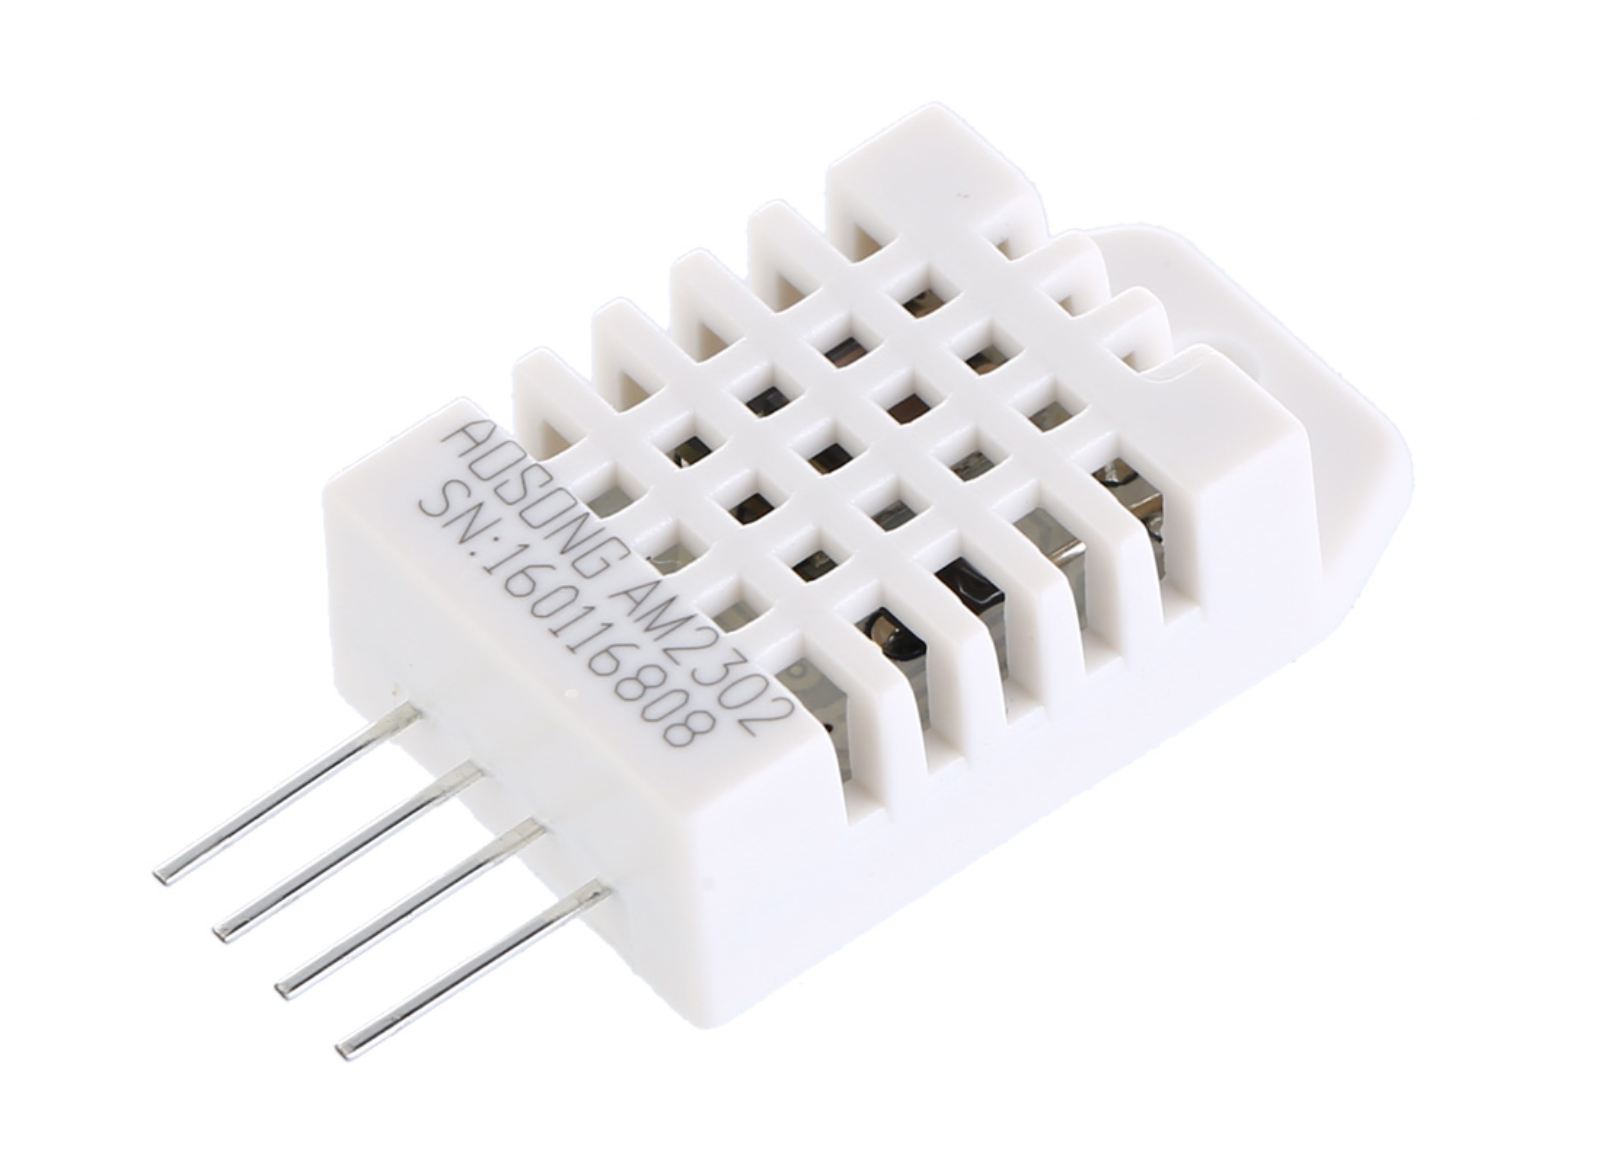 5 Dht22 Digital Temperature And Humidity Sensor Circuit Am2302